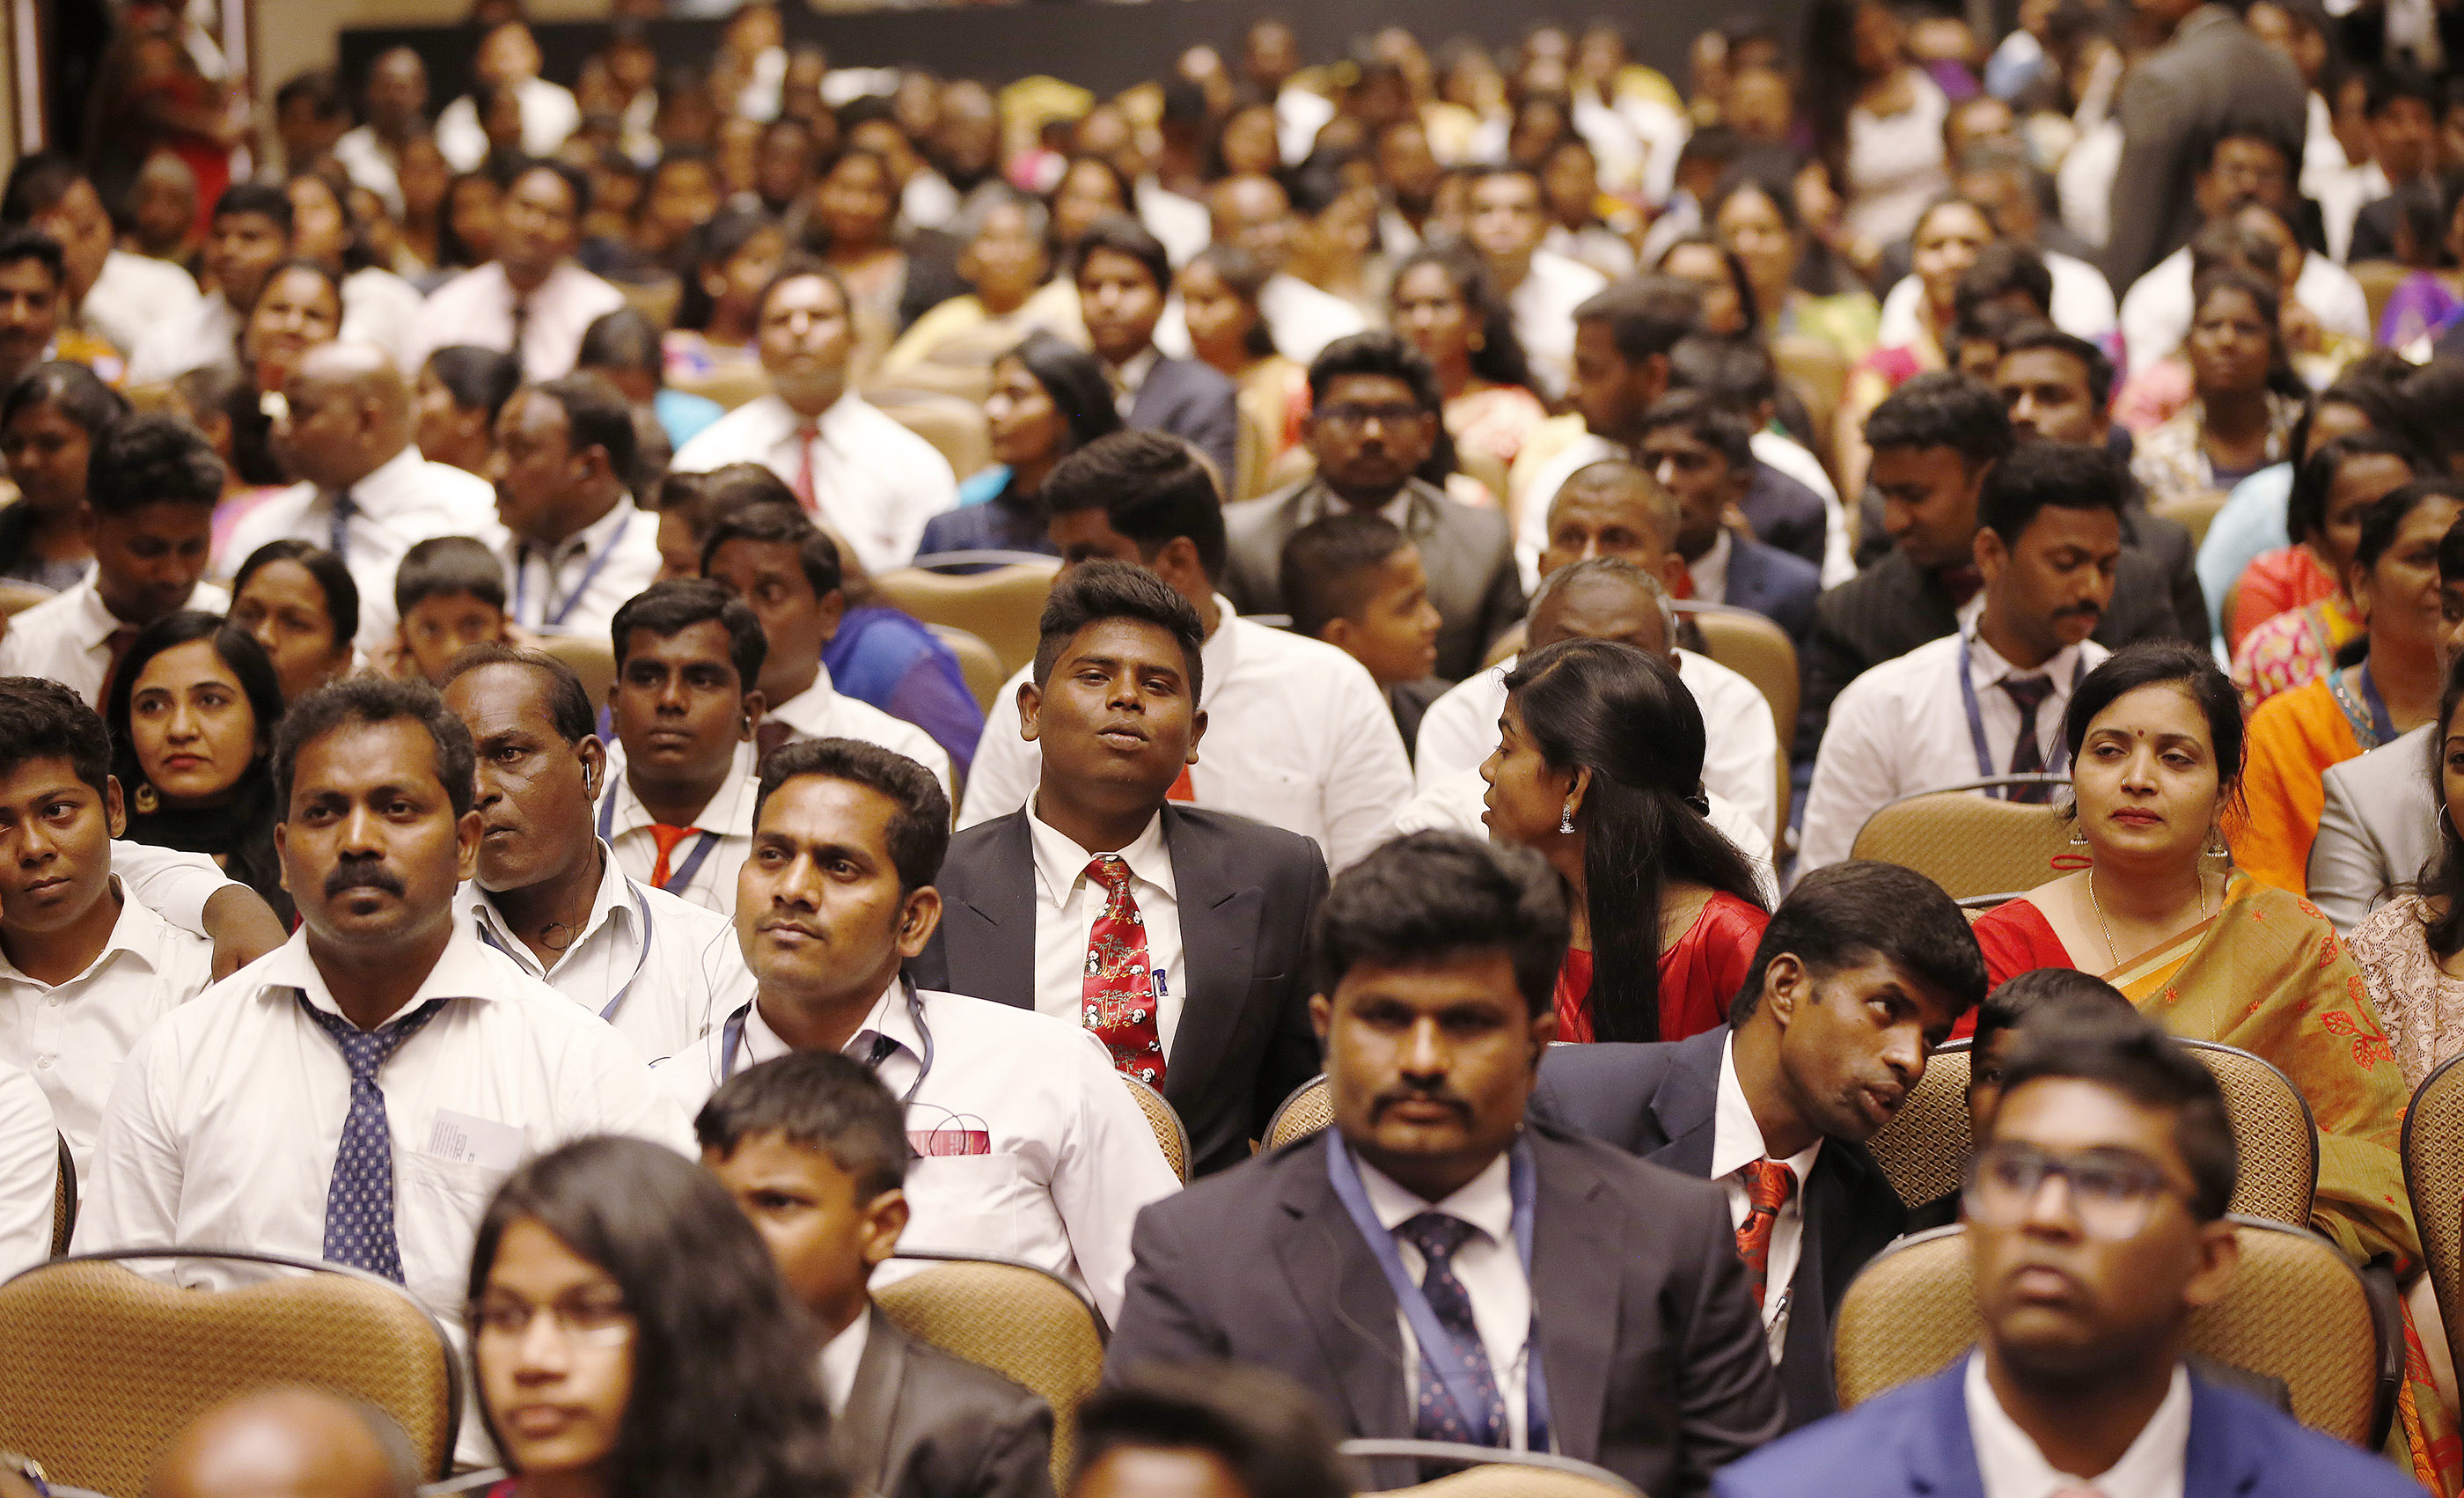 Attendees listen during a devotional with President Russell M. Nelson in Bengaluru, India, on Thursday, April 19, 2018.